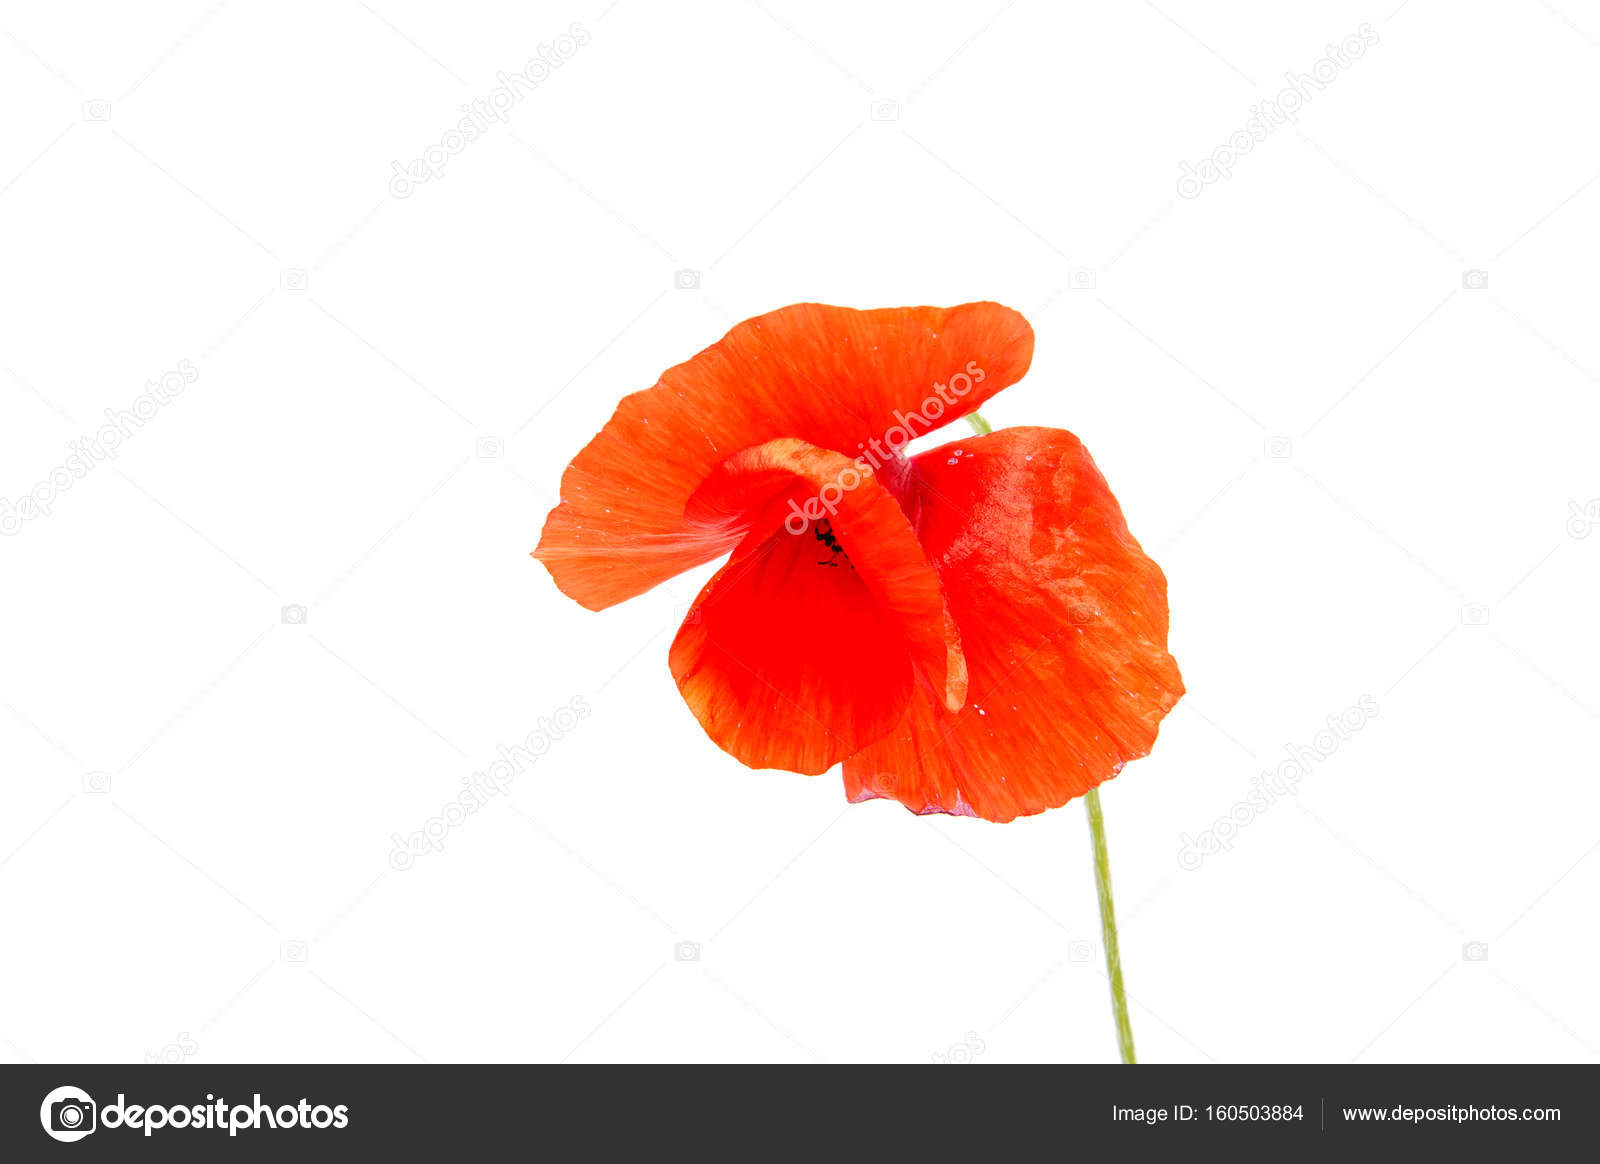 The Beautiful Flower Poppy Grows In The Wild Nature Stock Photo